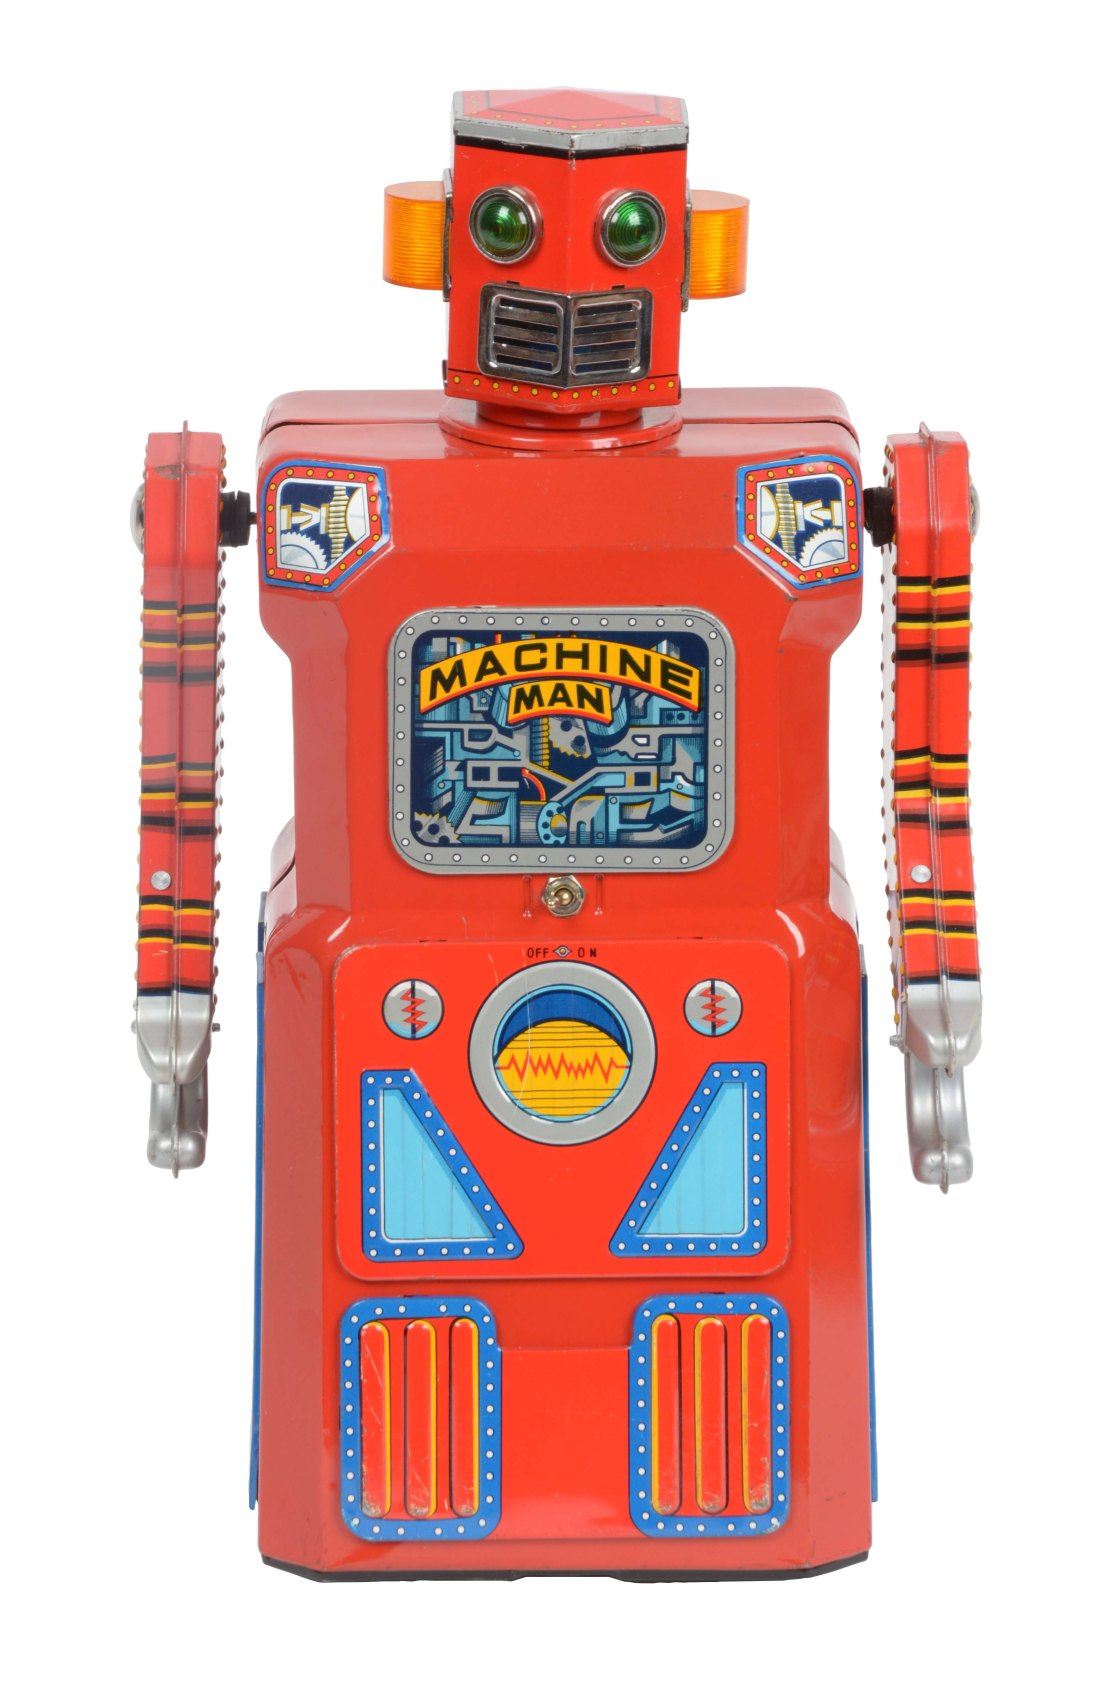 A bright red tin lithographic Machine Man robot toy, circa 1960, the rarest of the Japanese robot toys known as the Gang of Five.